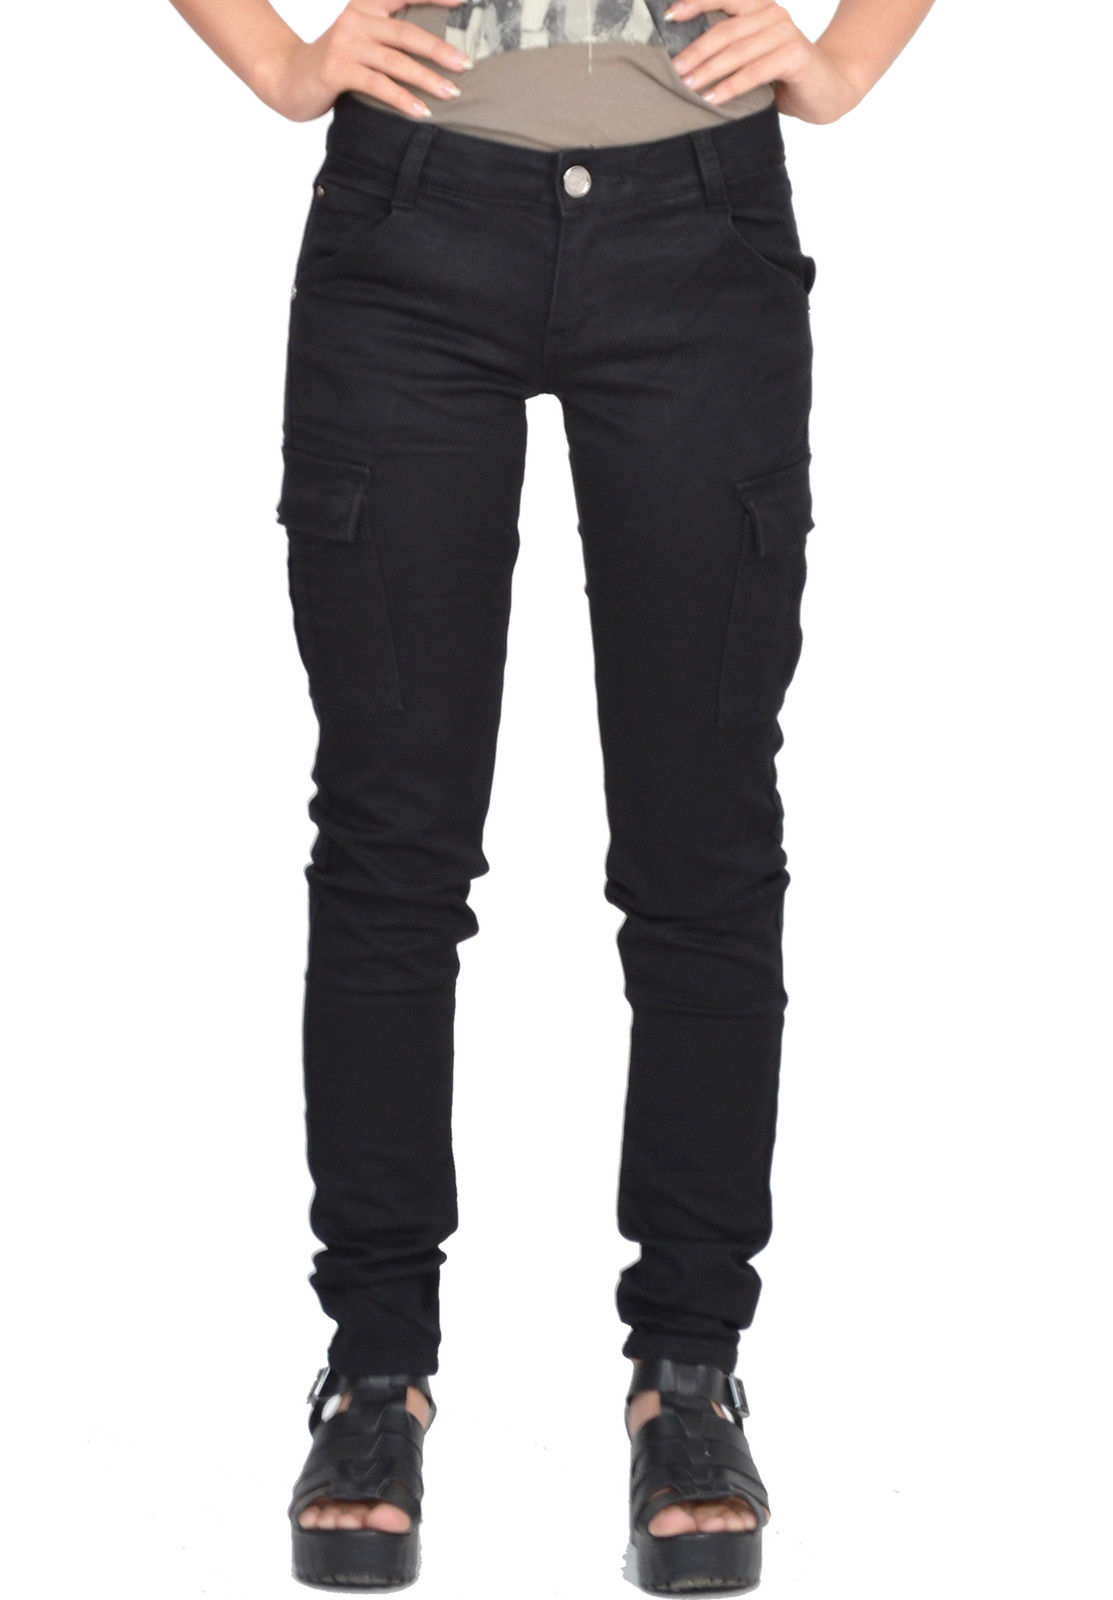 fitted cargo pants womens photo - 2